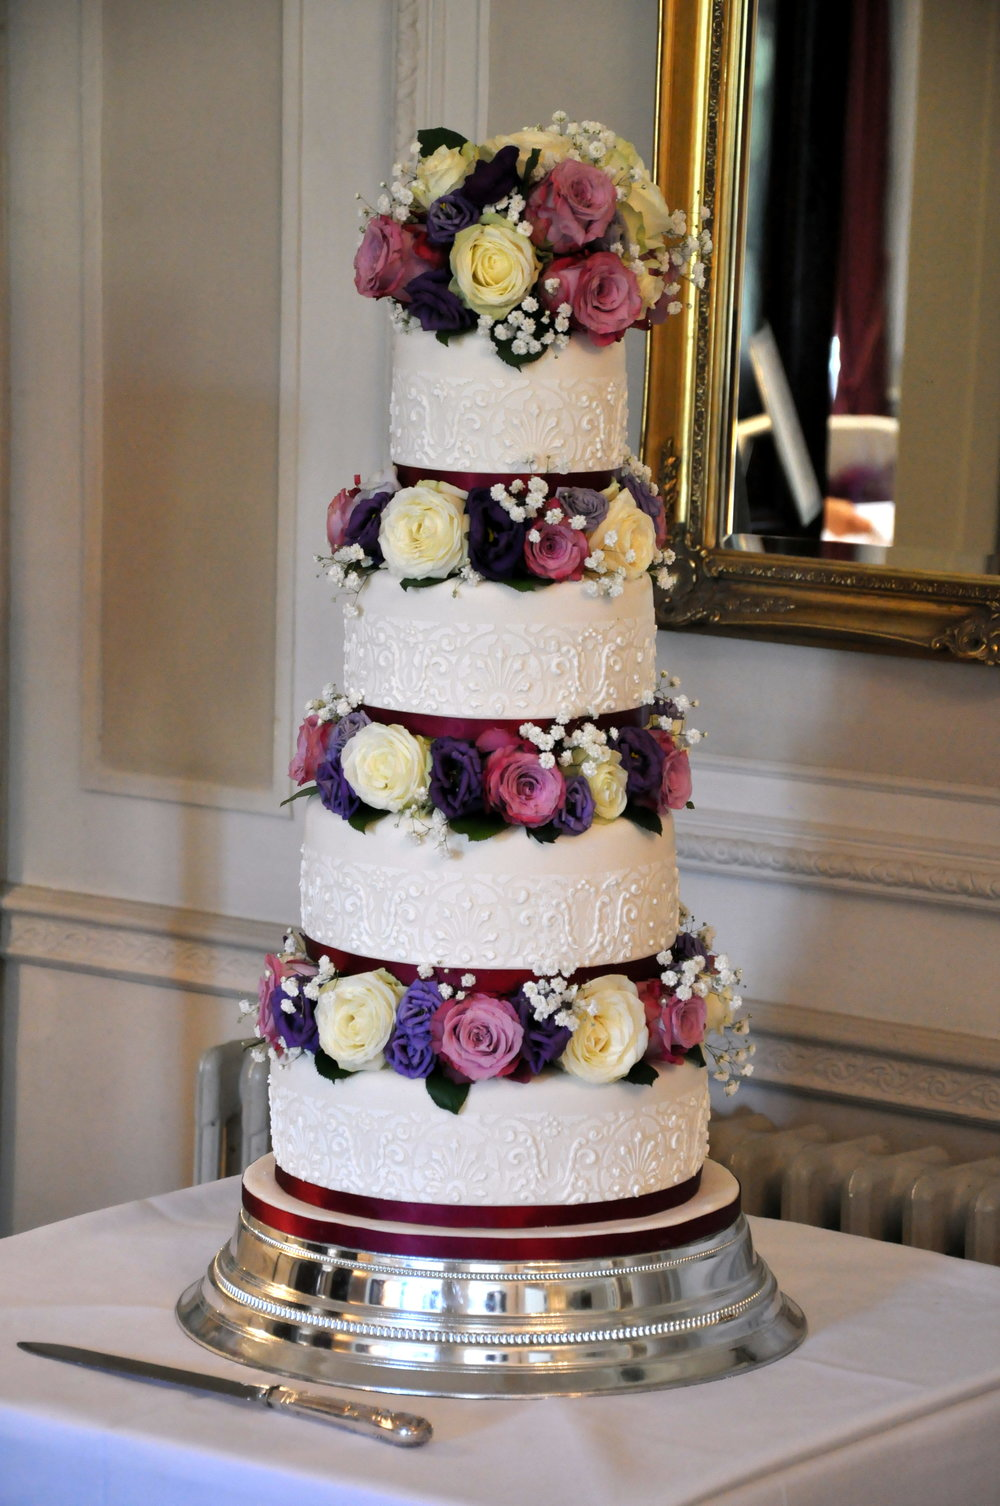 - A stylish and classic four tier wedding cake, with fine stenciling and fresh flowers for decoration.